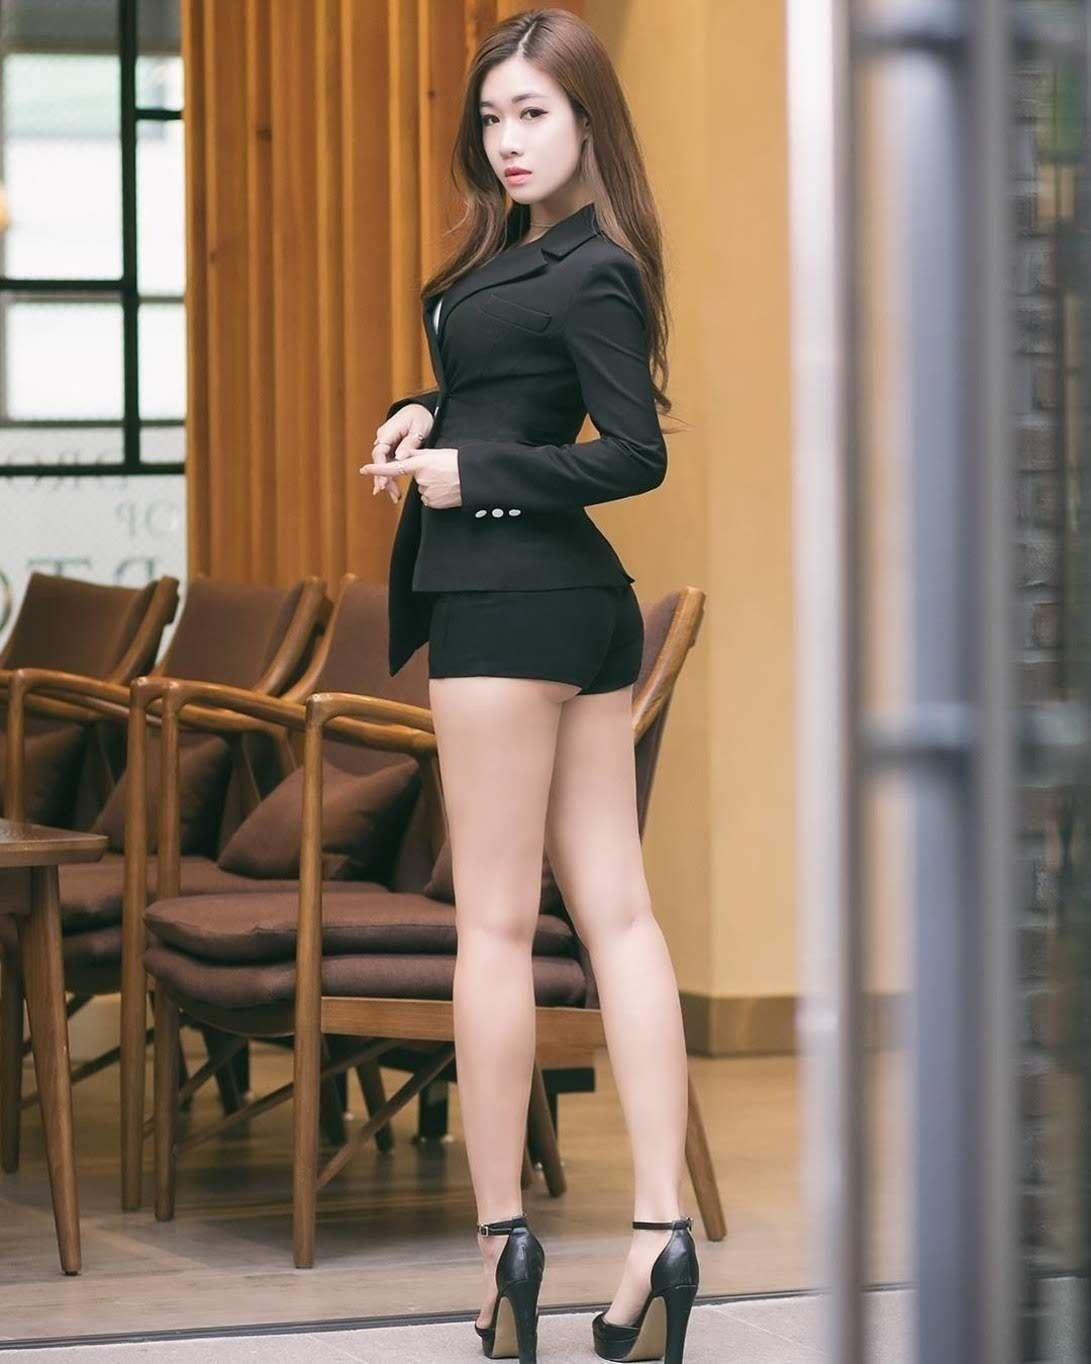 chicktrainer watching Asian pantyhose